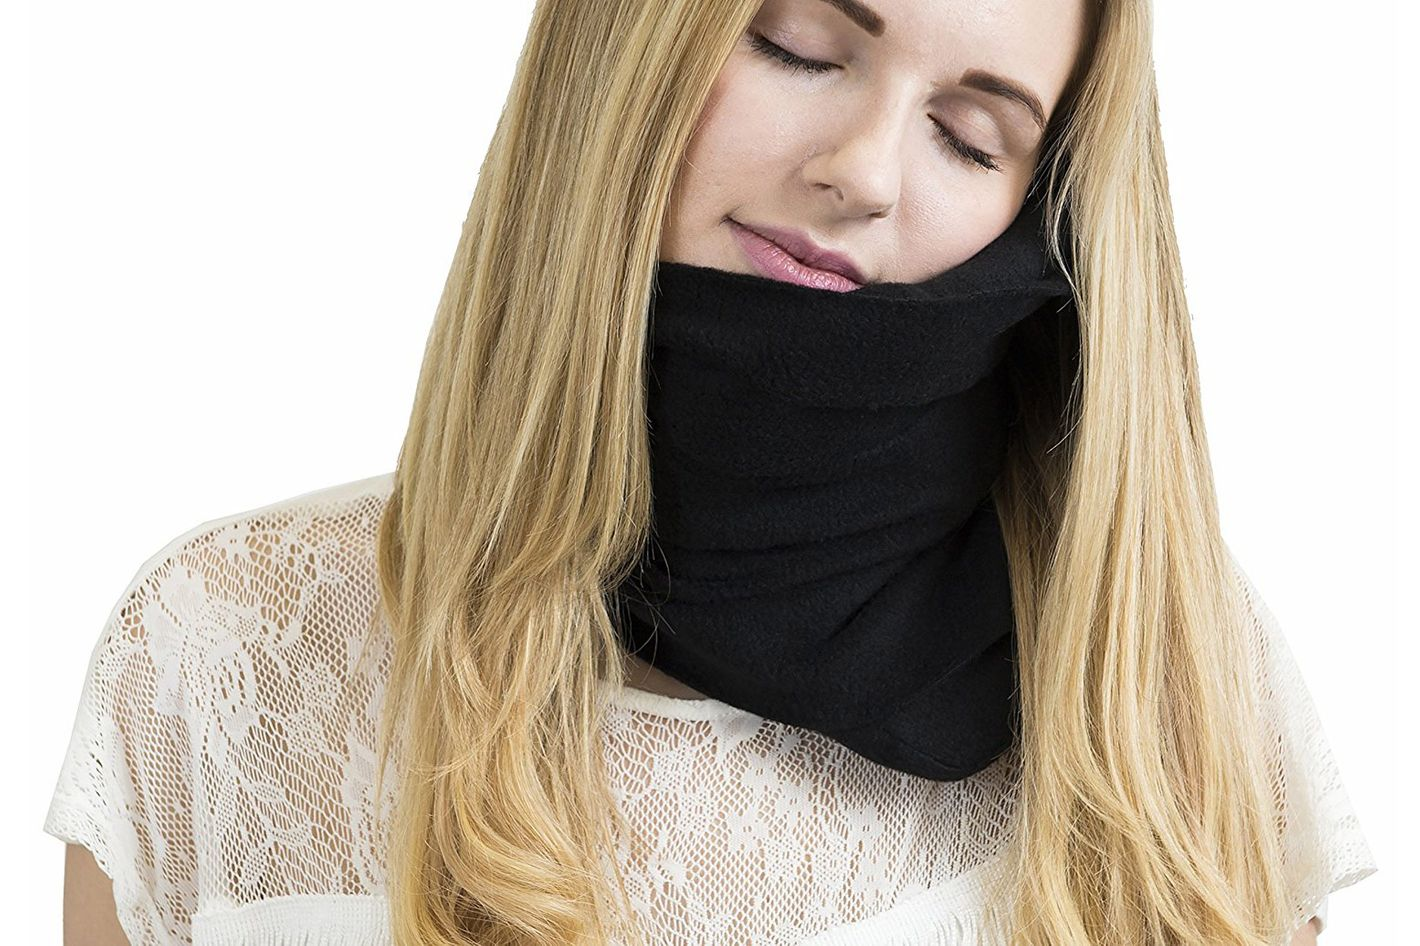 Trtl Pillow — Super Soft Neck Support Travel Pillow